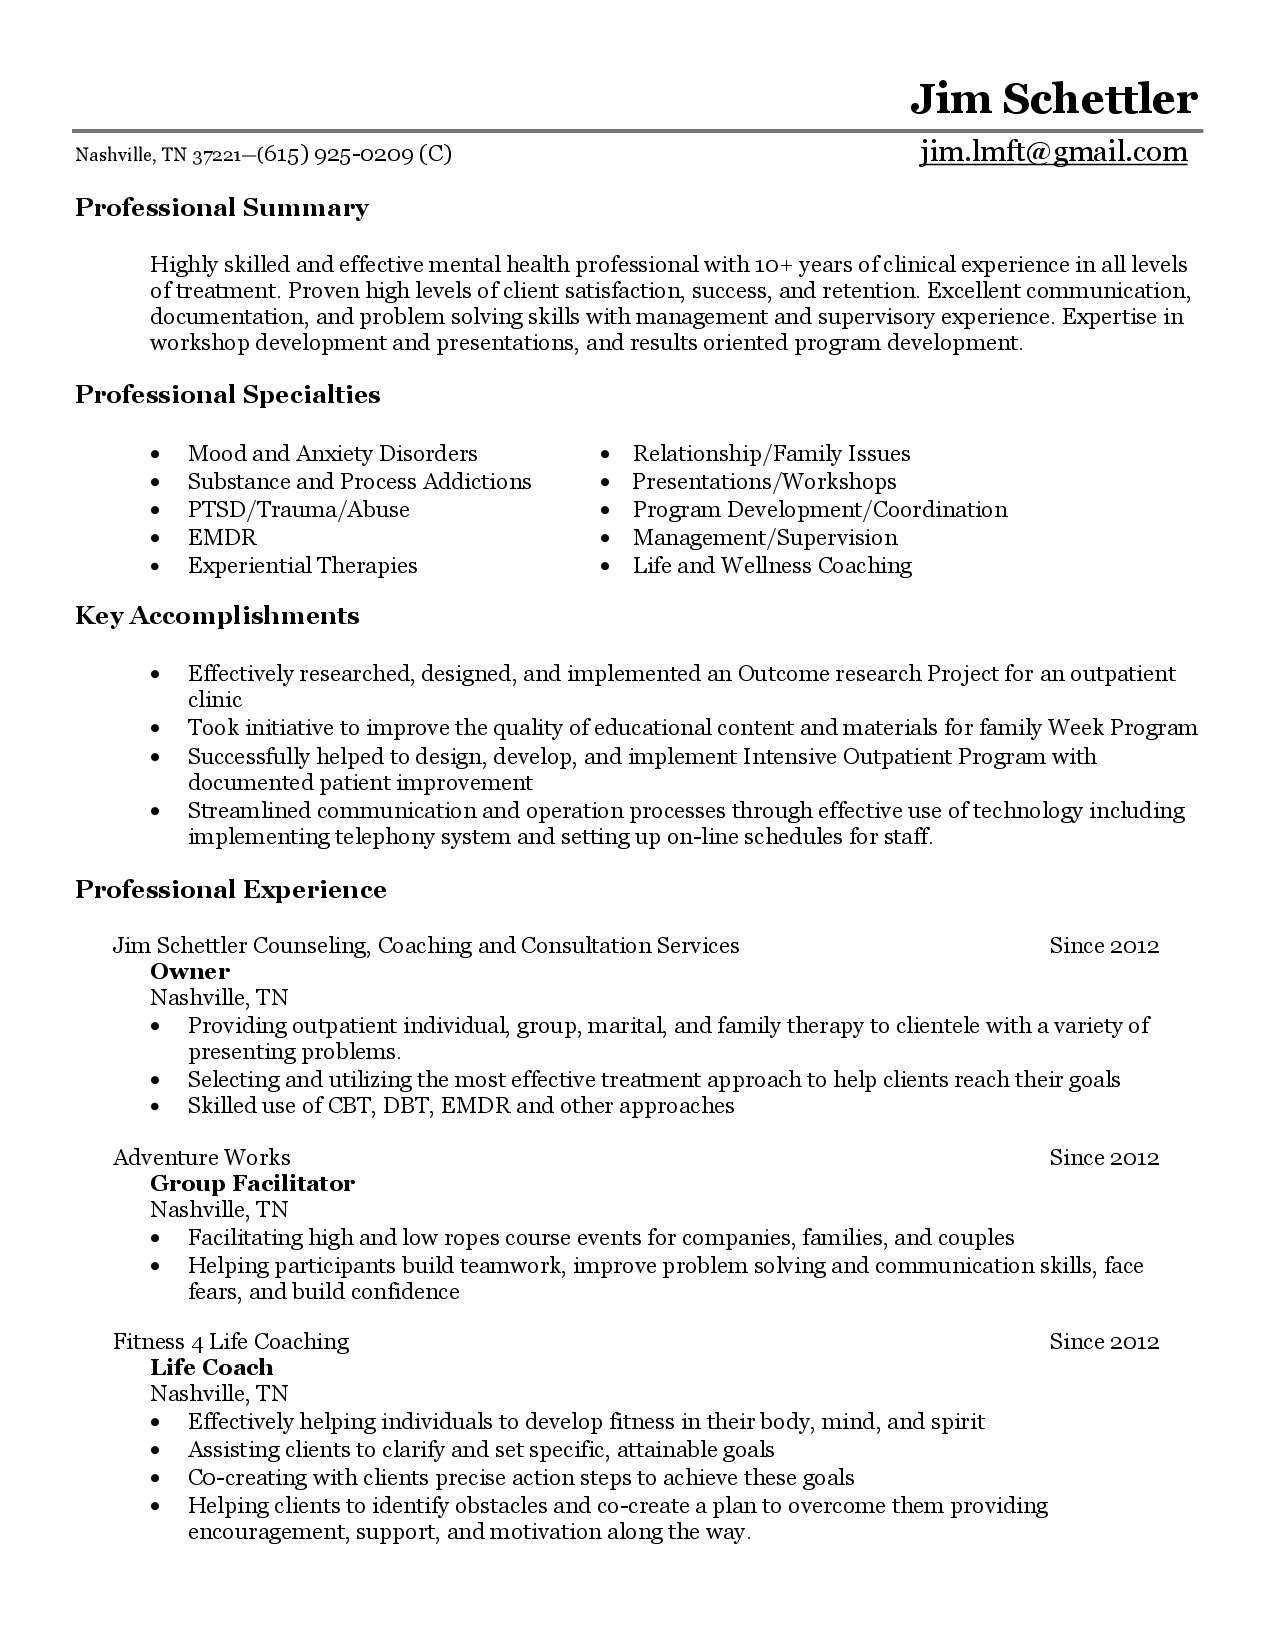 weight loss counselor sample resume root cause analyst cover